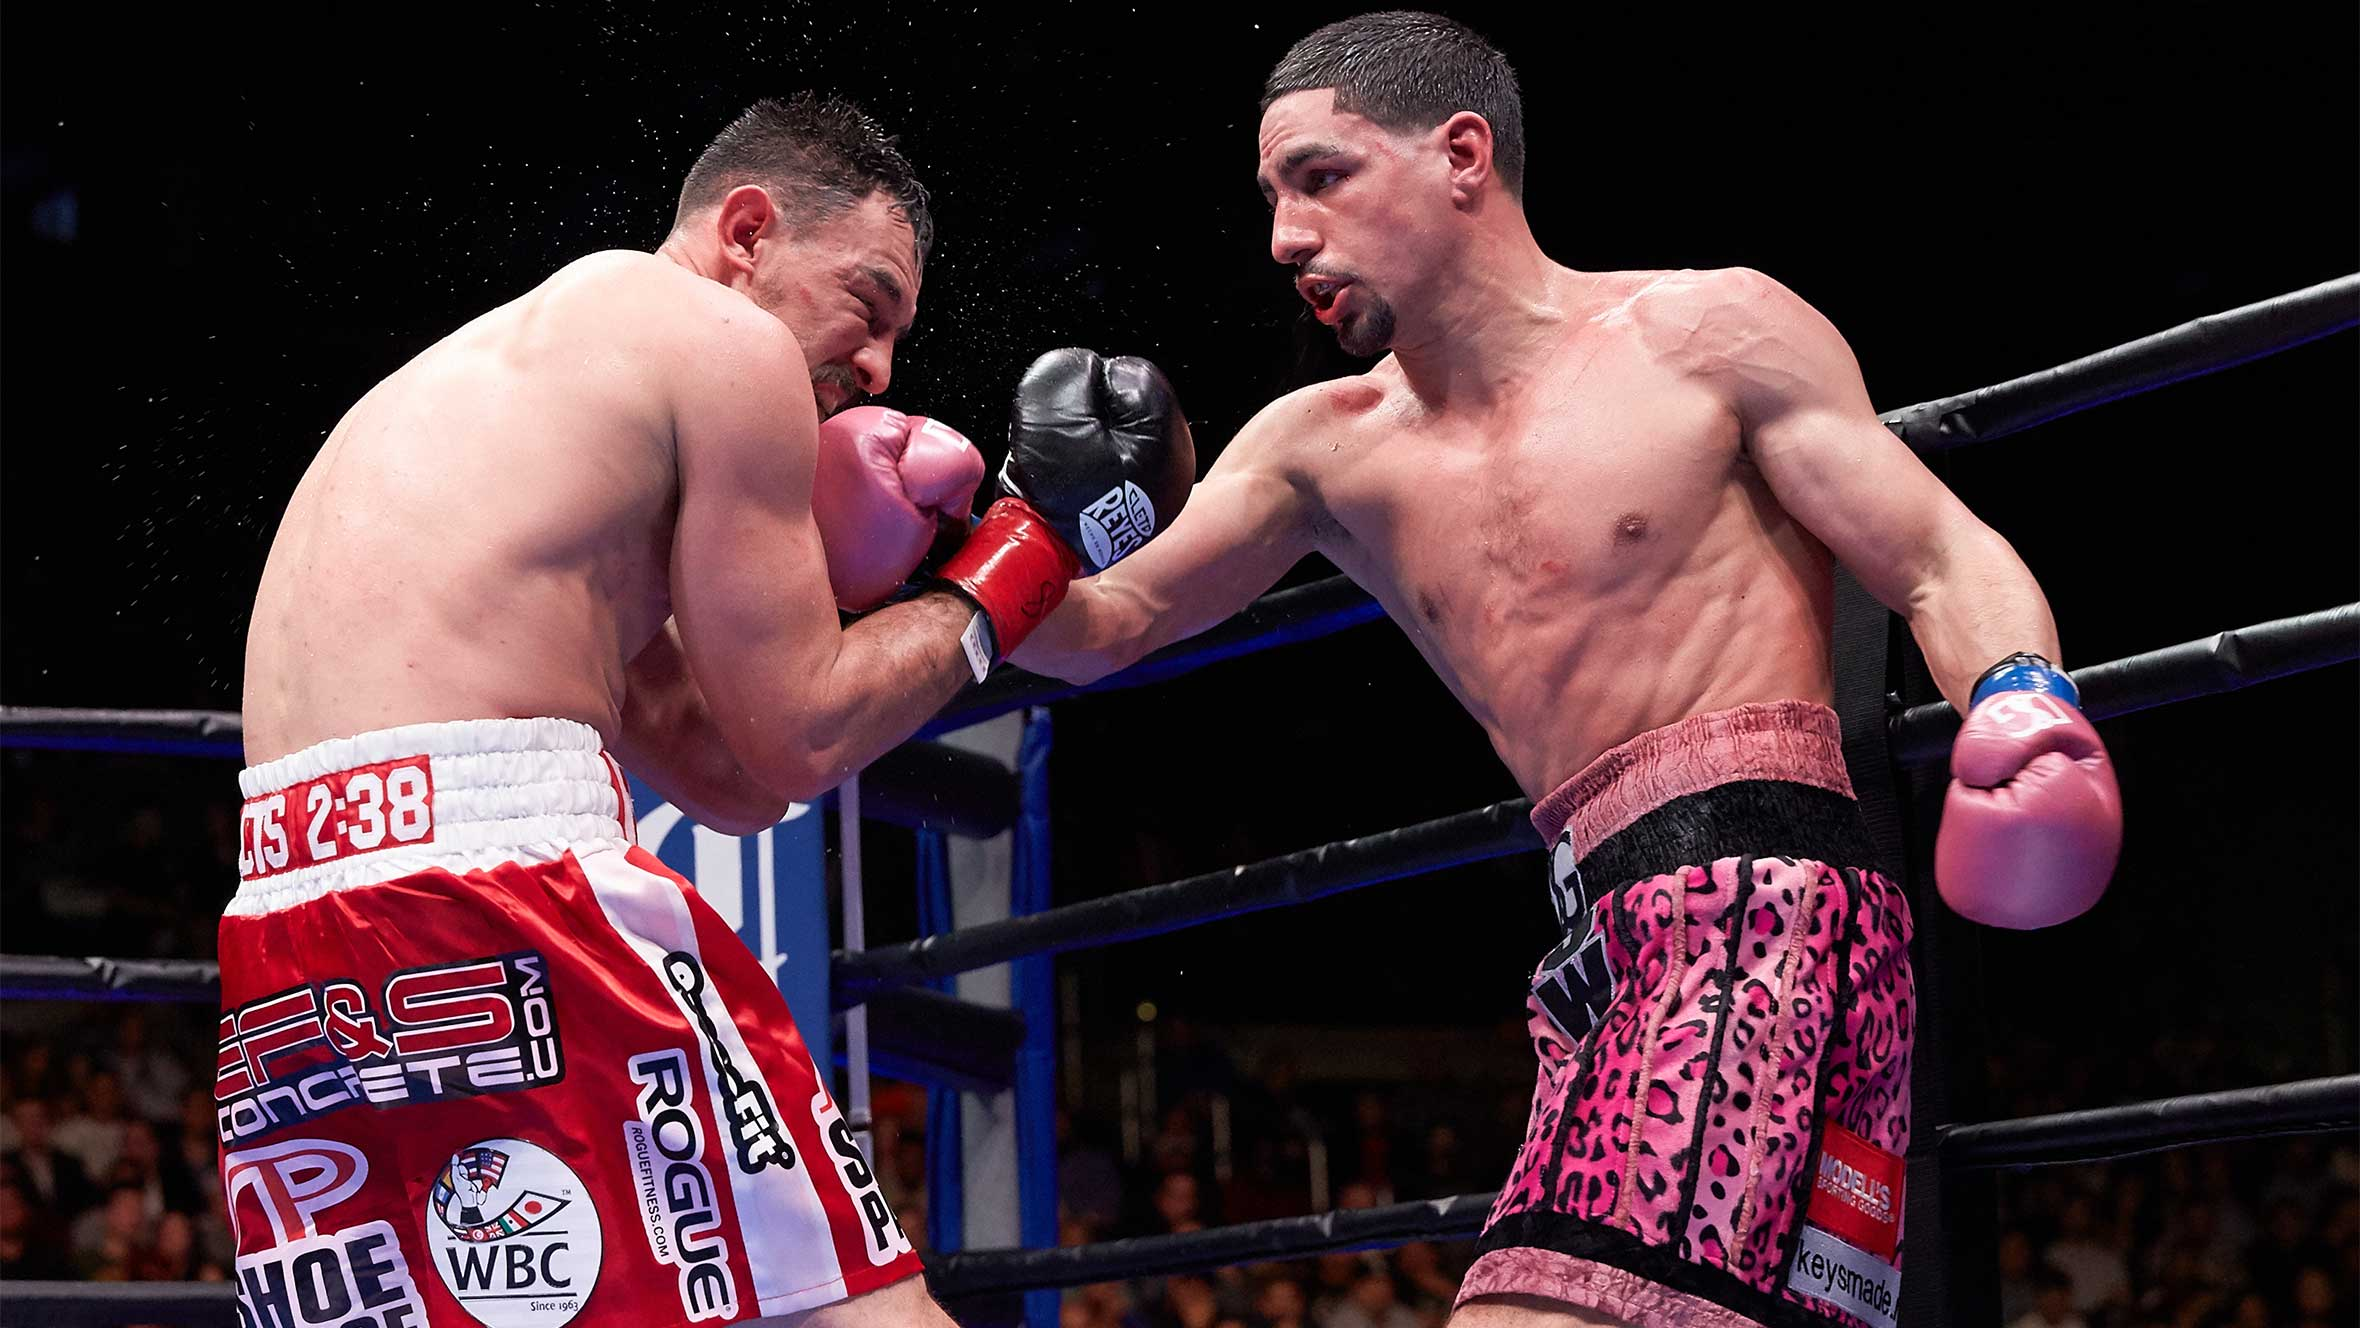 Danny Garcia - Next Fight, Fighter Bio, Stats & News